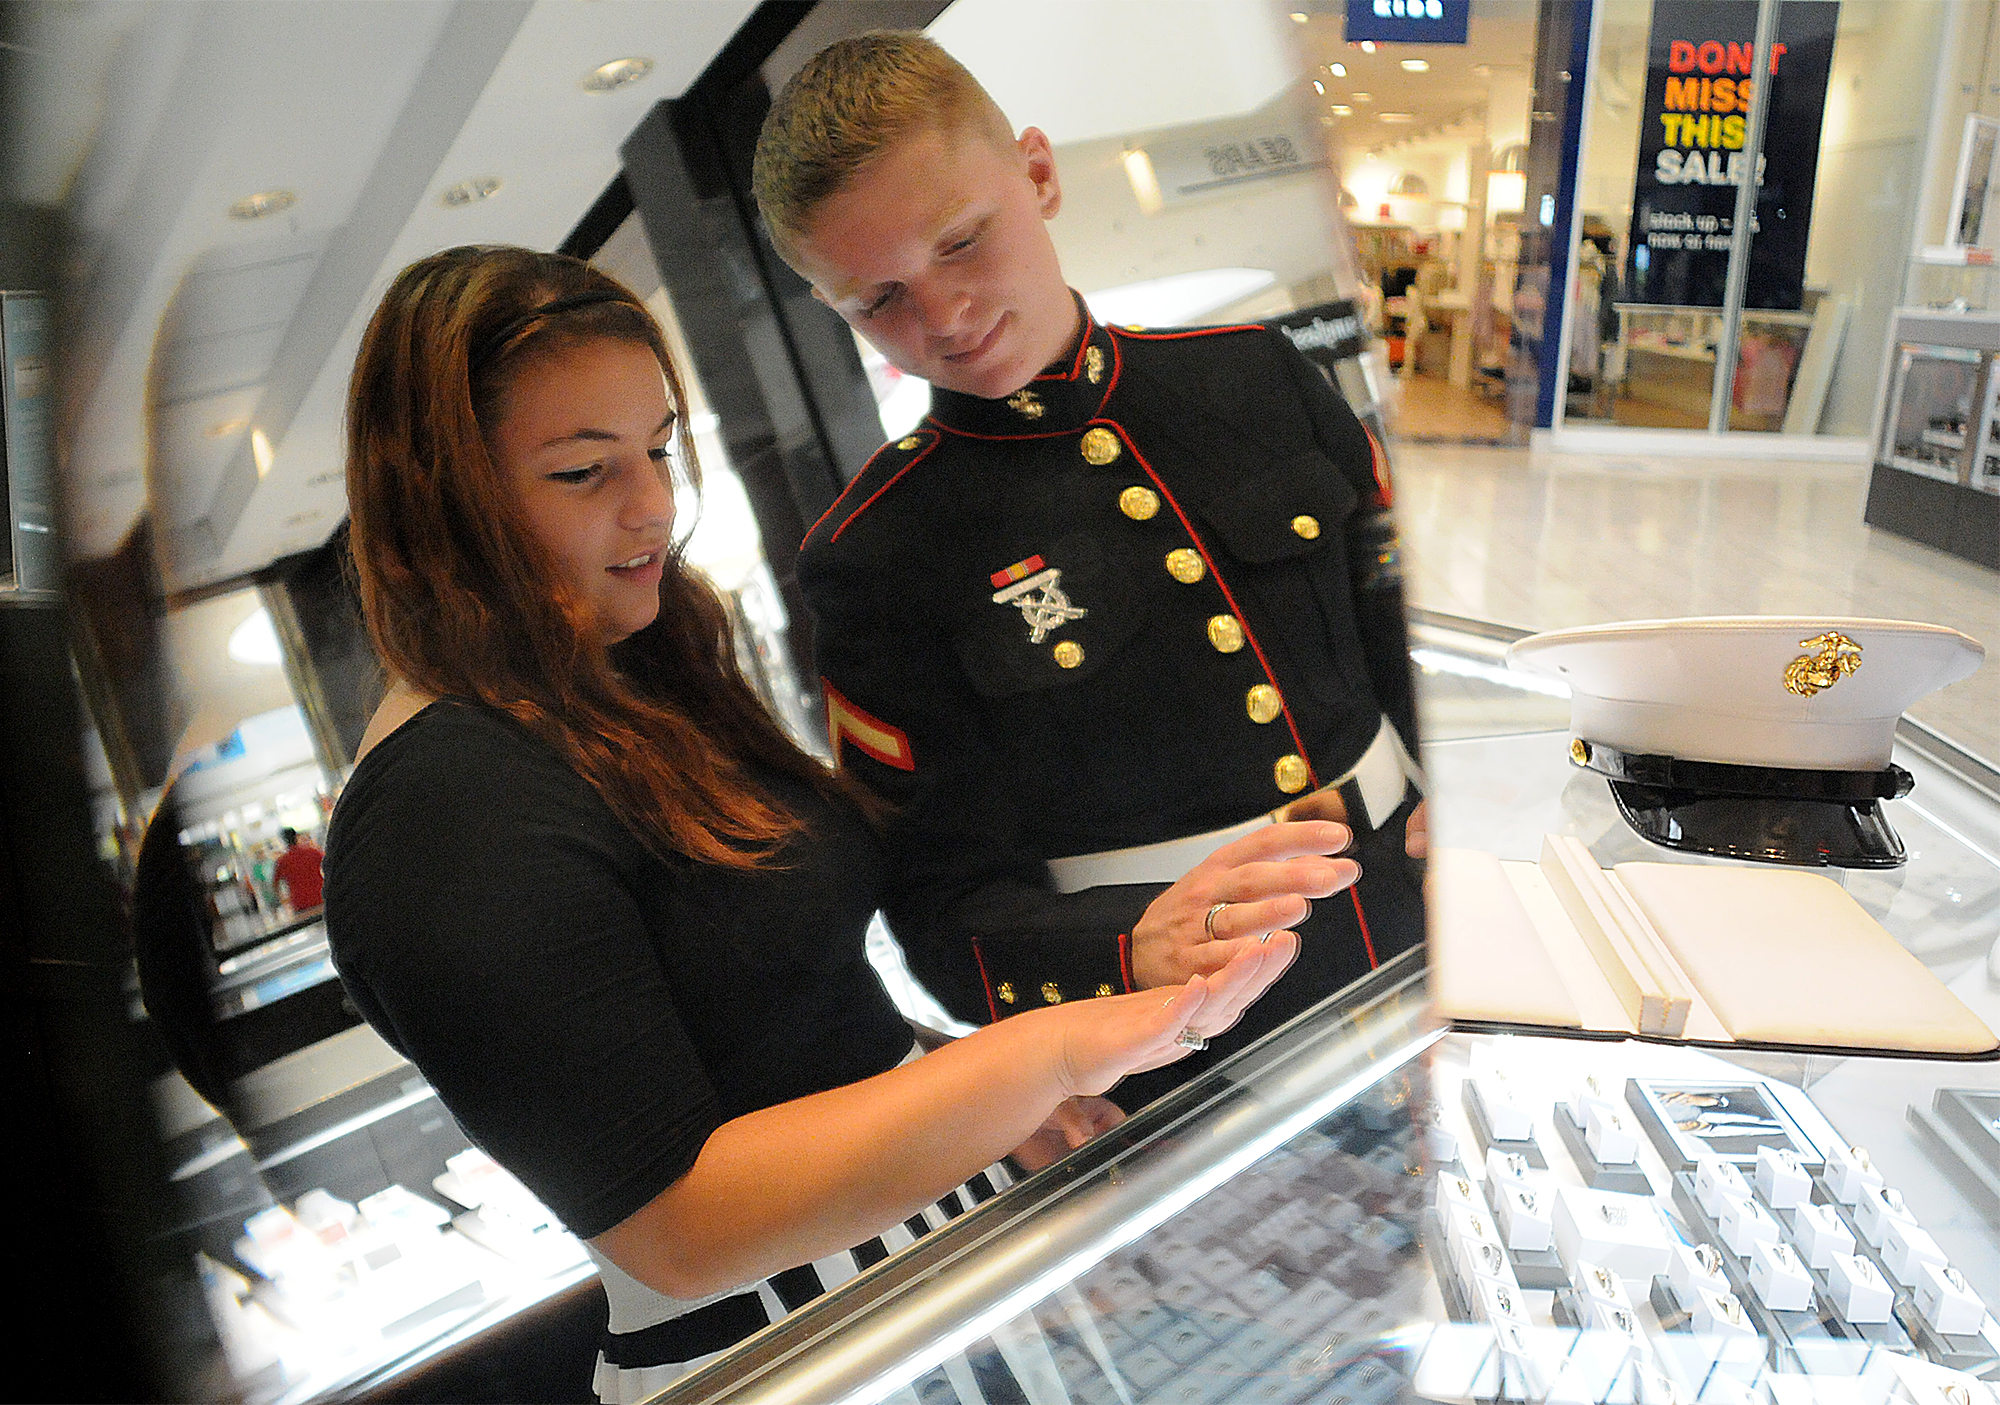 Dee Hubay and fiancé Dan Bryan look for wedding bands at Littman Jewelers in the Oxford Valley Mall on Monday, July 20, 2015.